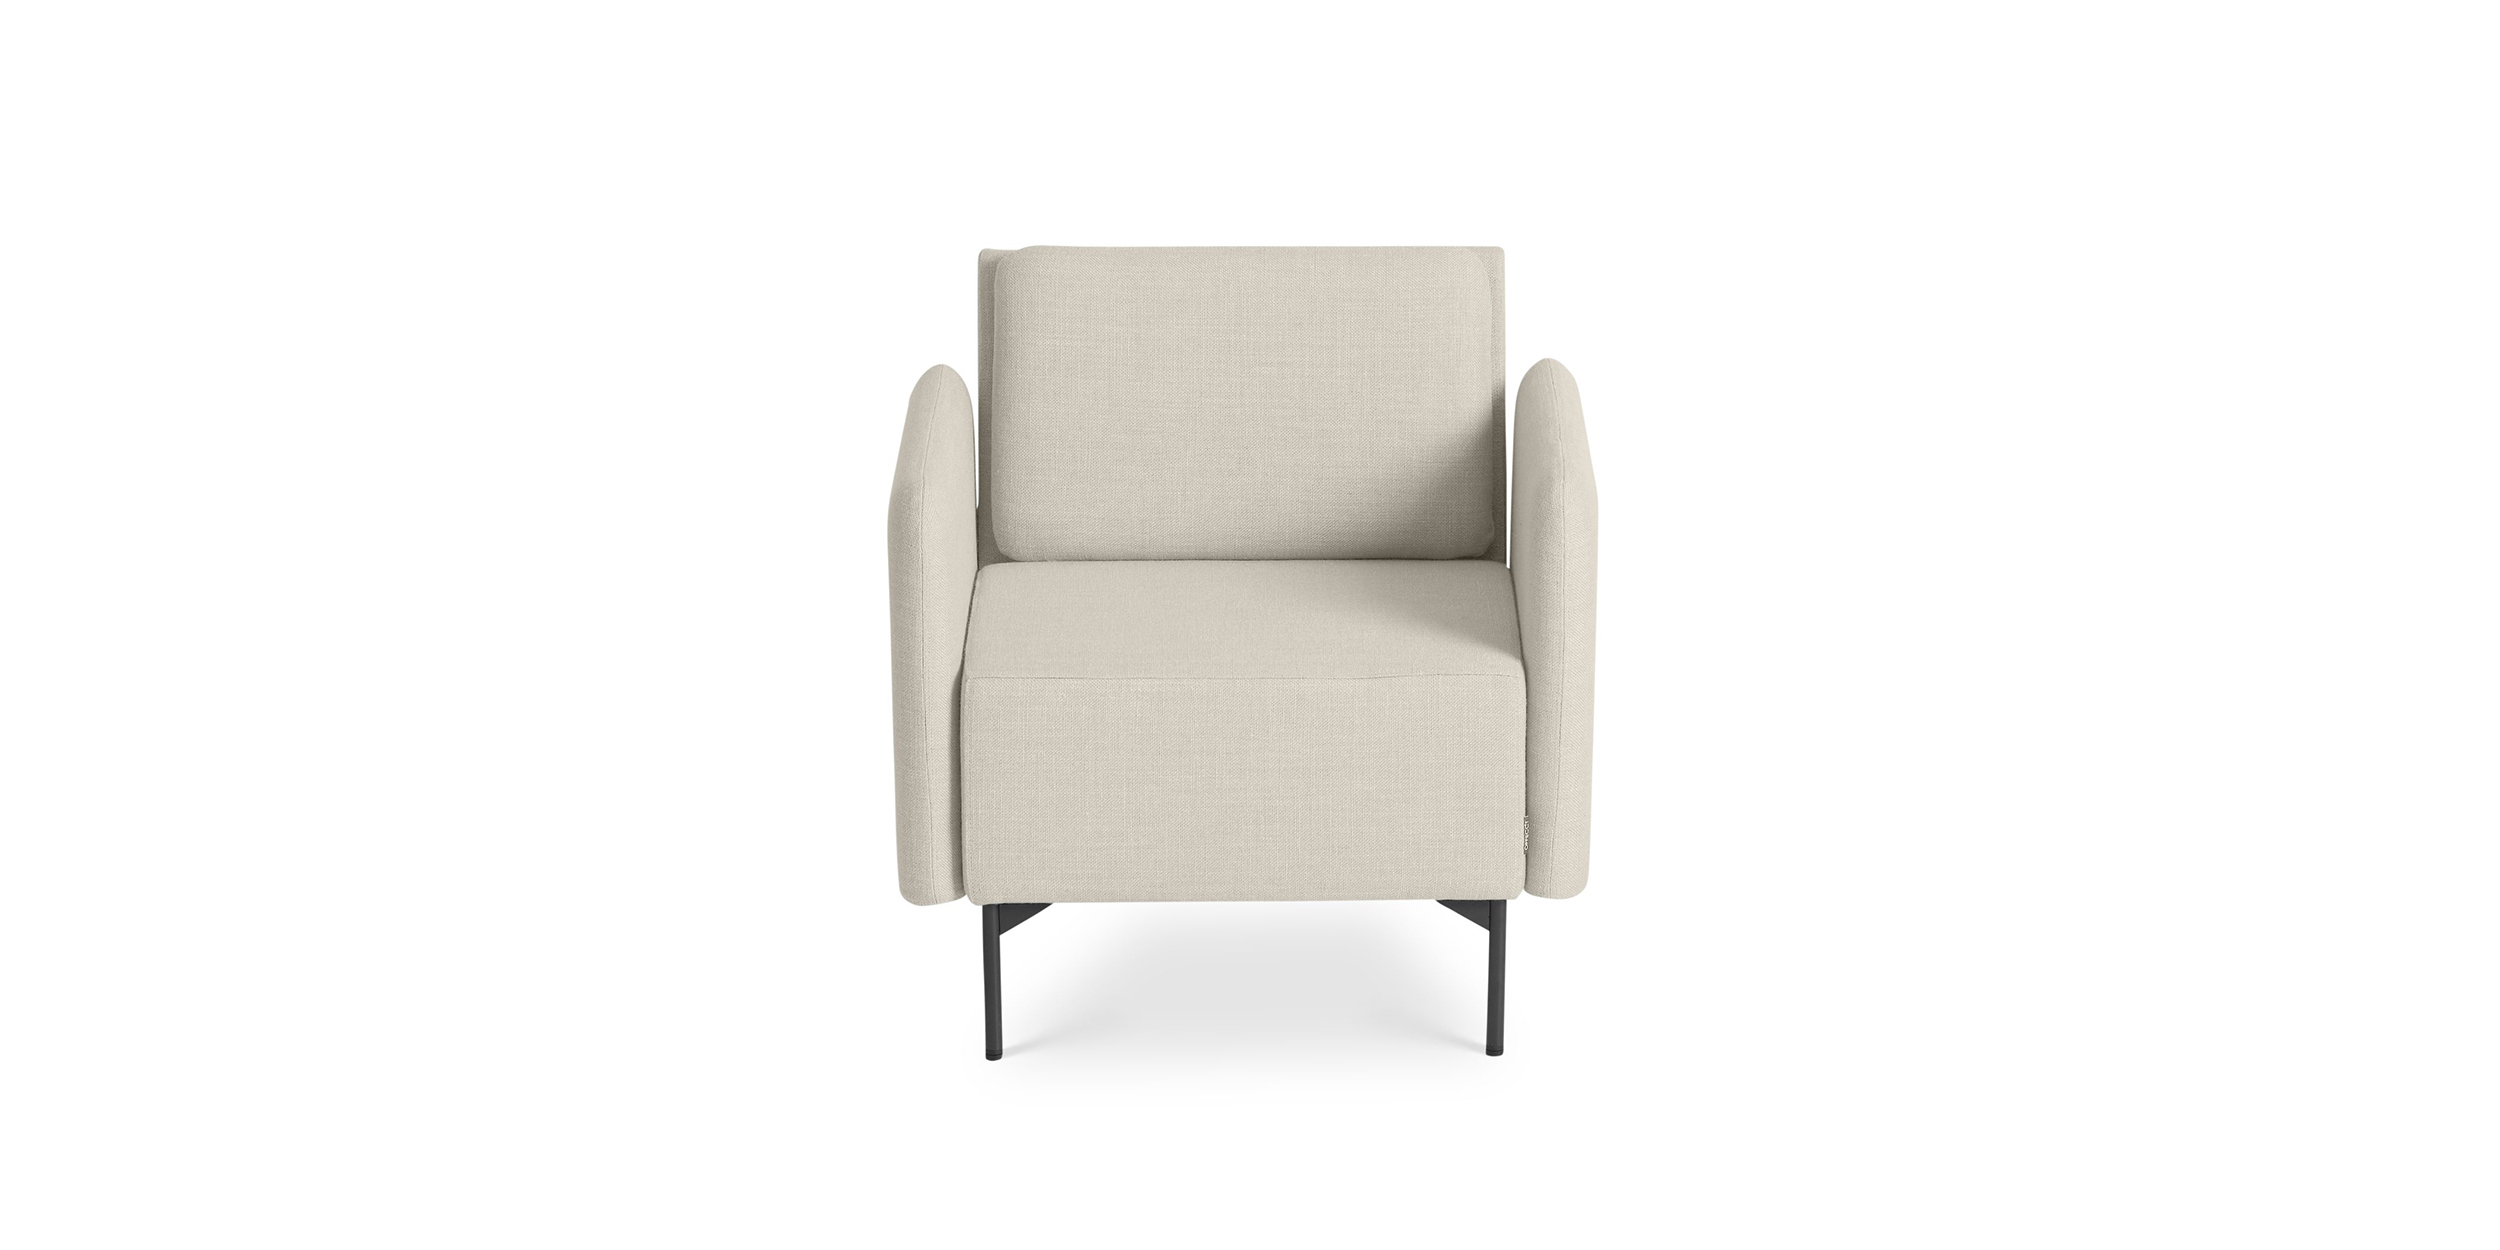 Marvelous Playback Modern Lounge Chair Claesson Koivisto Rune Inzonedesignstudio Interior Chair Design Inzonedesignstudiocom